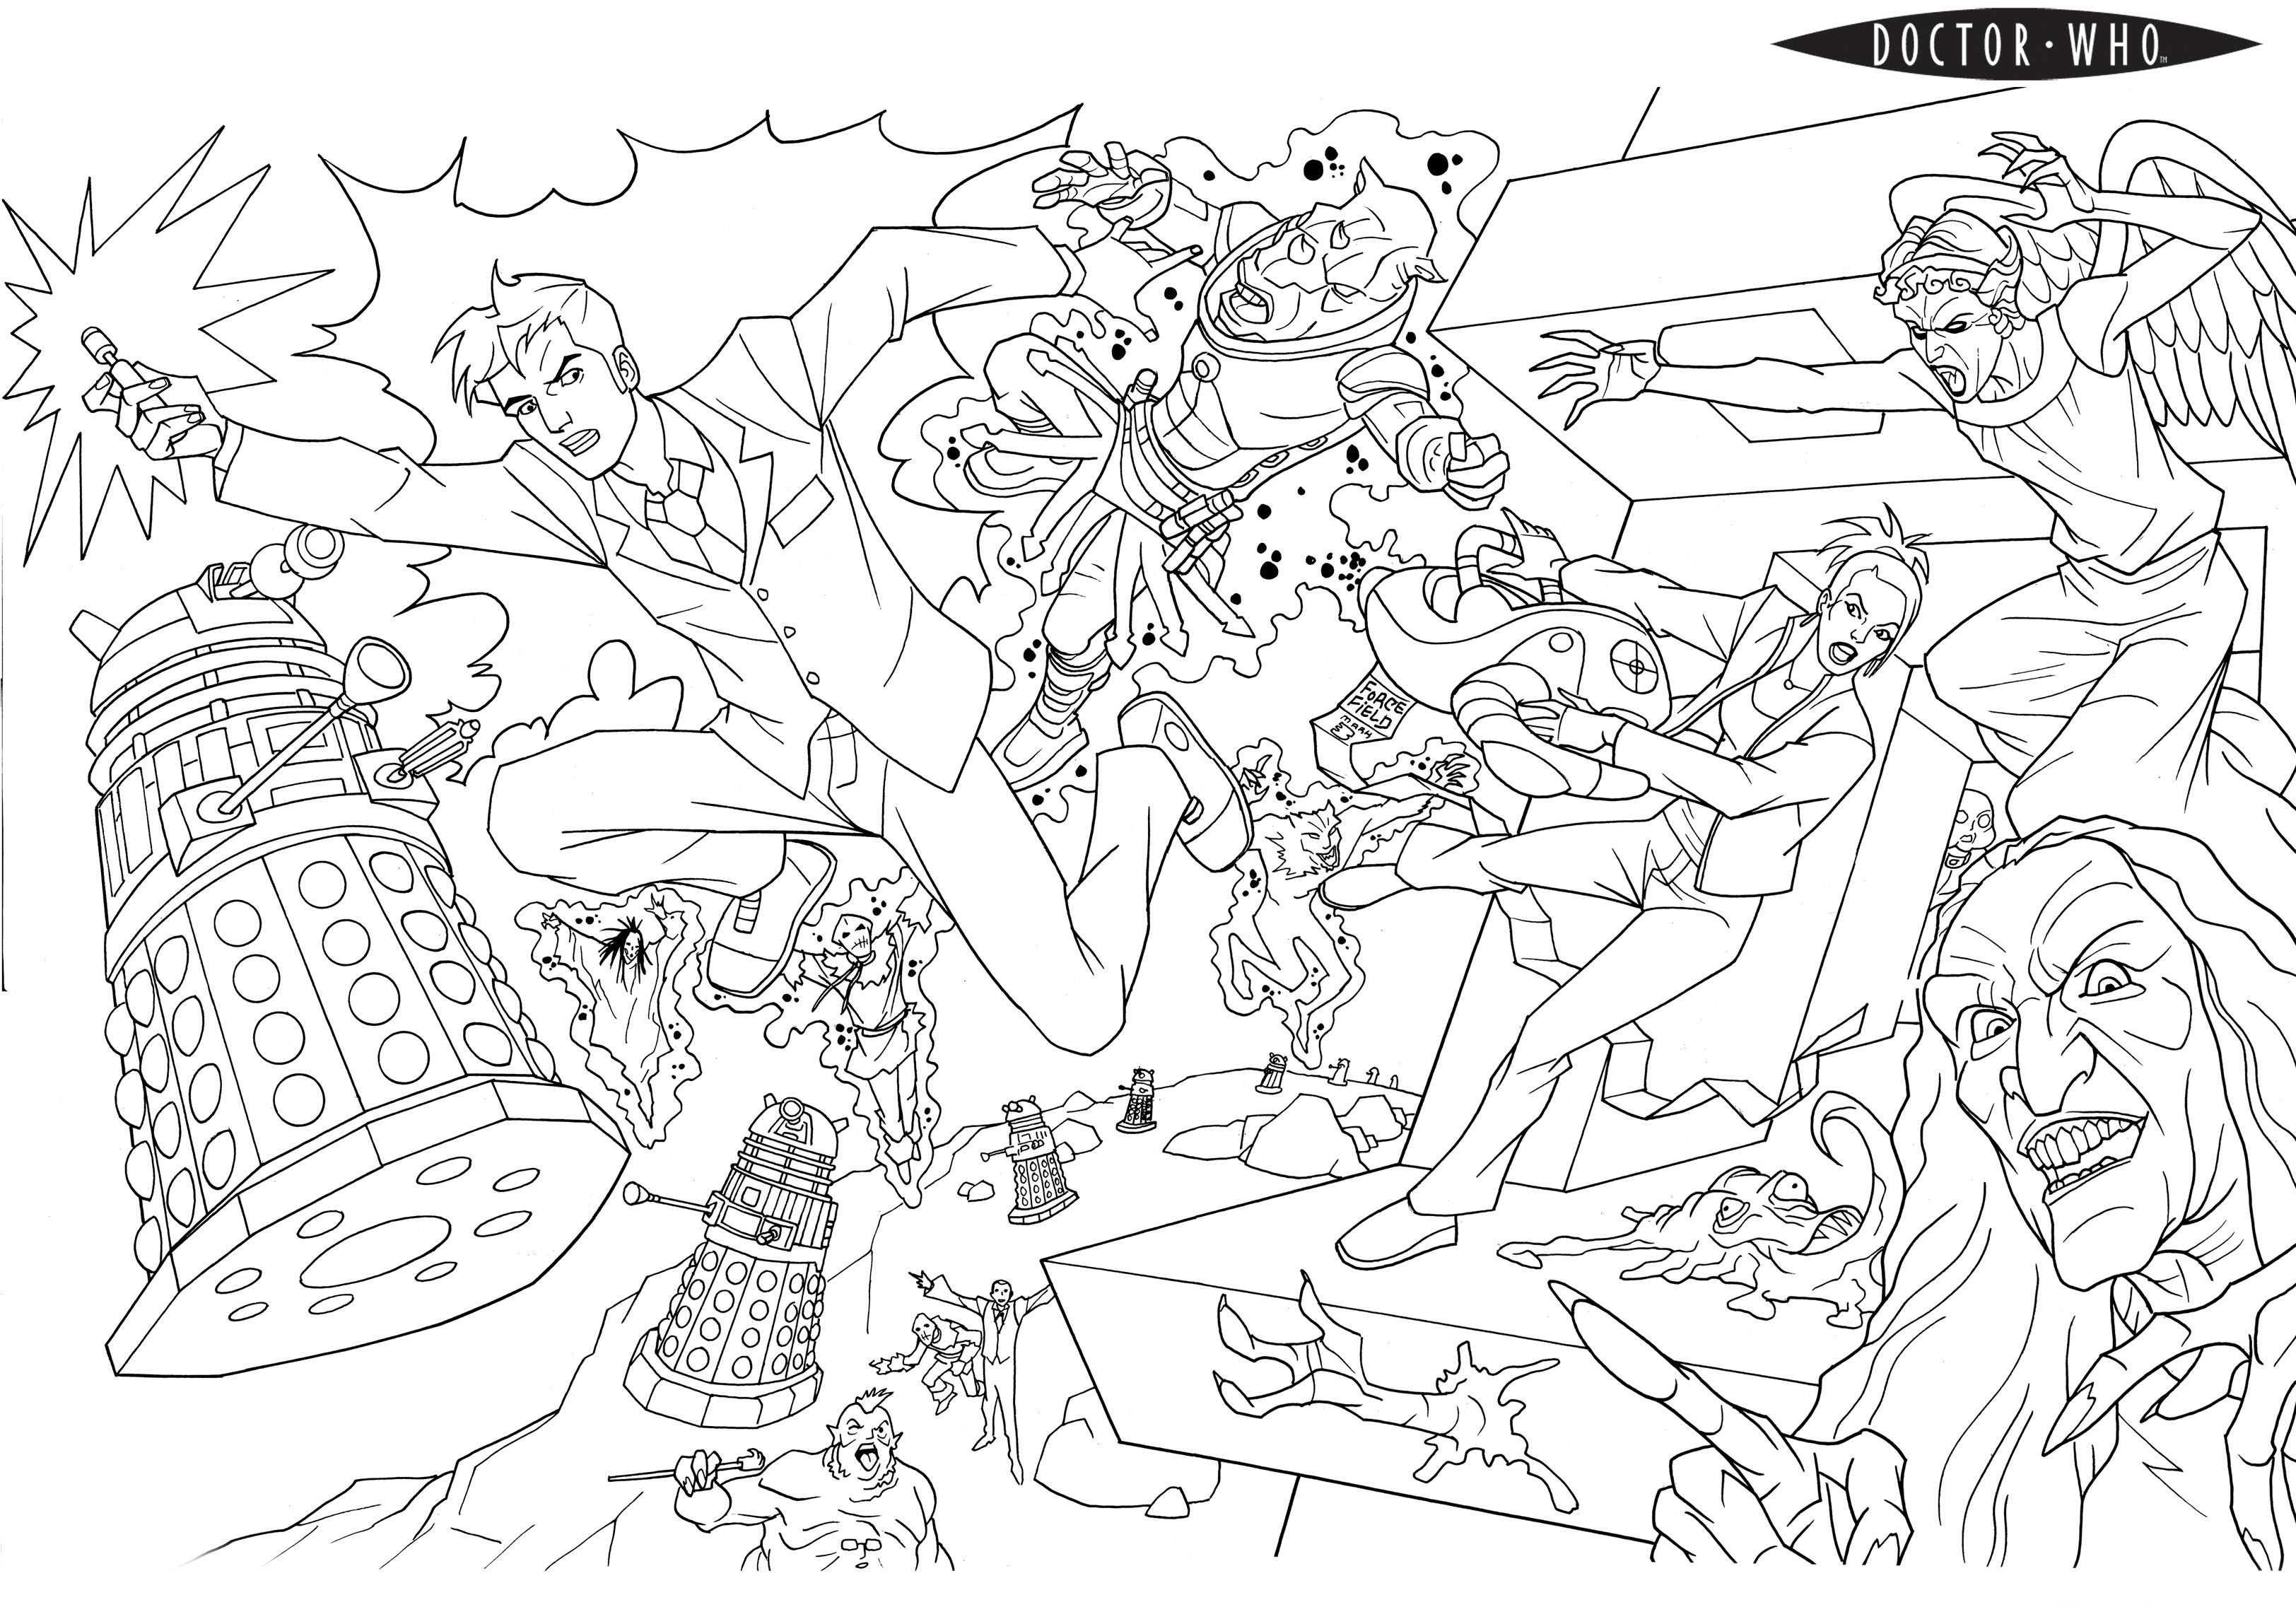 Doctor Who Coloring Pages Characters